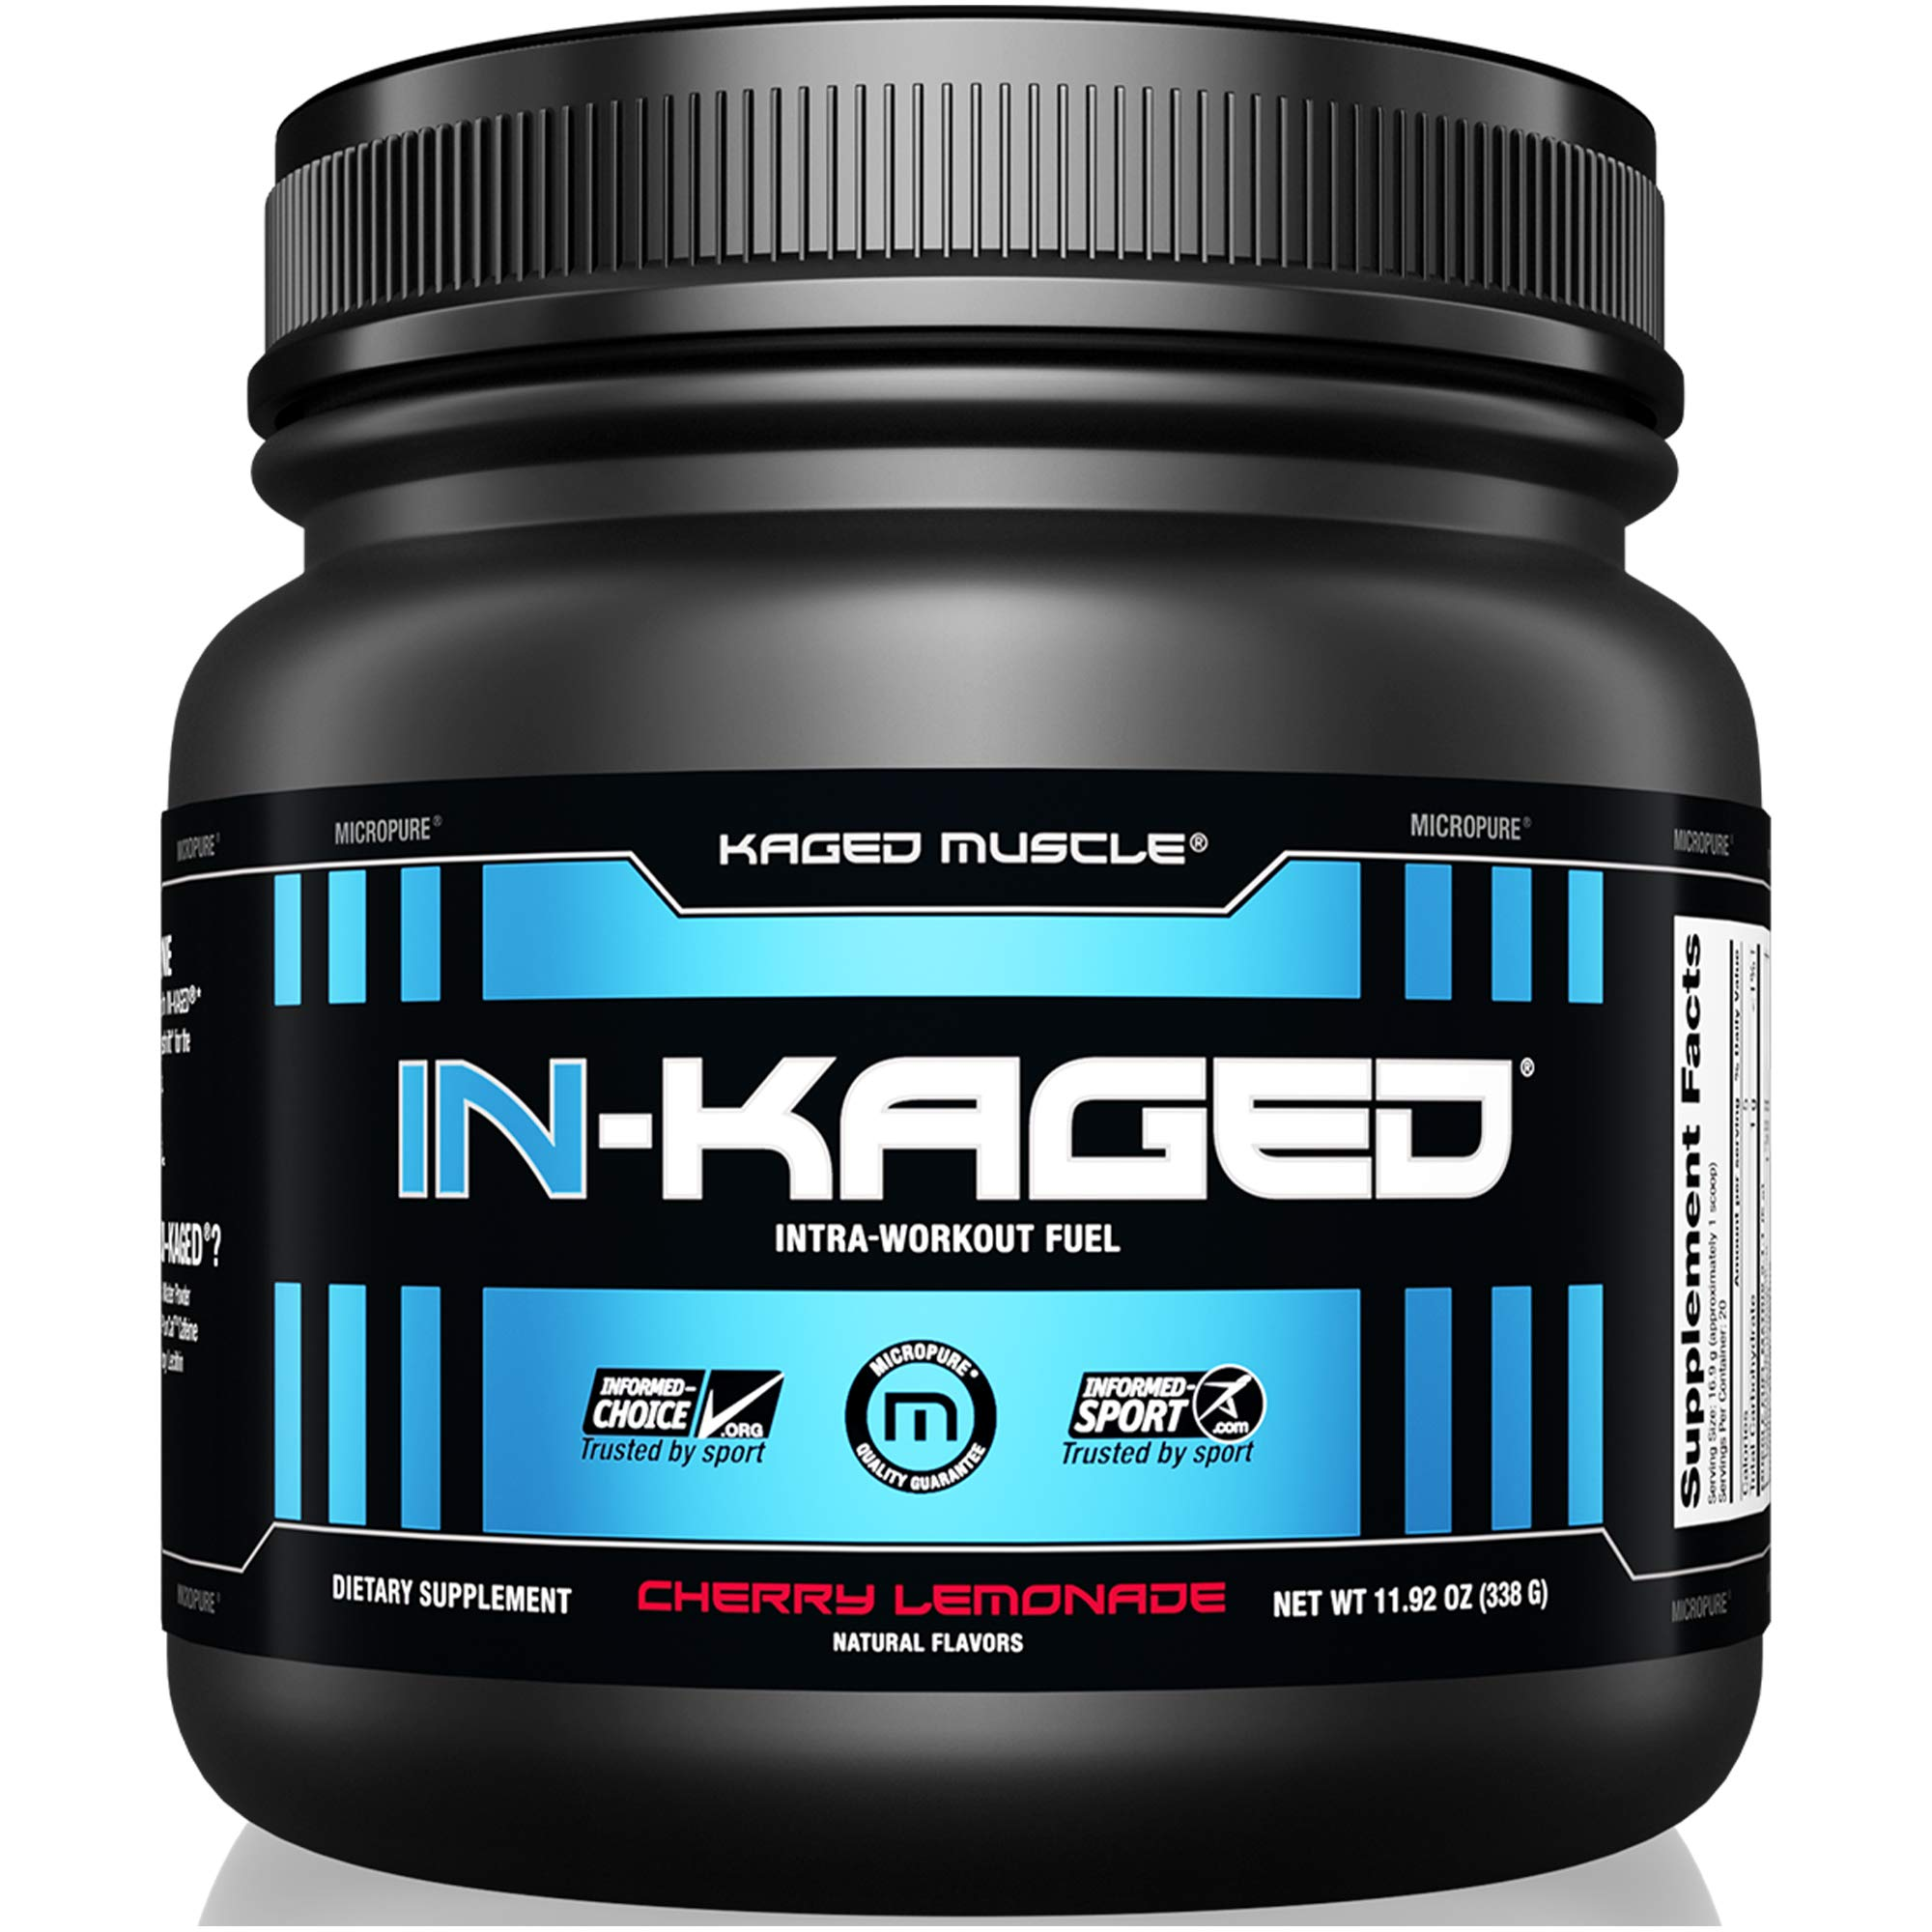 KAGED MUSCLE, IN-KAGED Intra Workout Powder, Intra-Workout Fuel, L-Citrulline, Workout, Boost Energy, Muscle Pump, Intra Workout, Cherry Lemonade, 20 Servings by Kaged Muscle